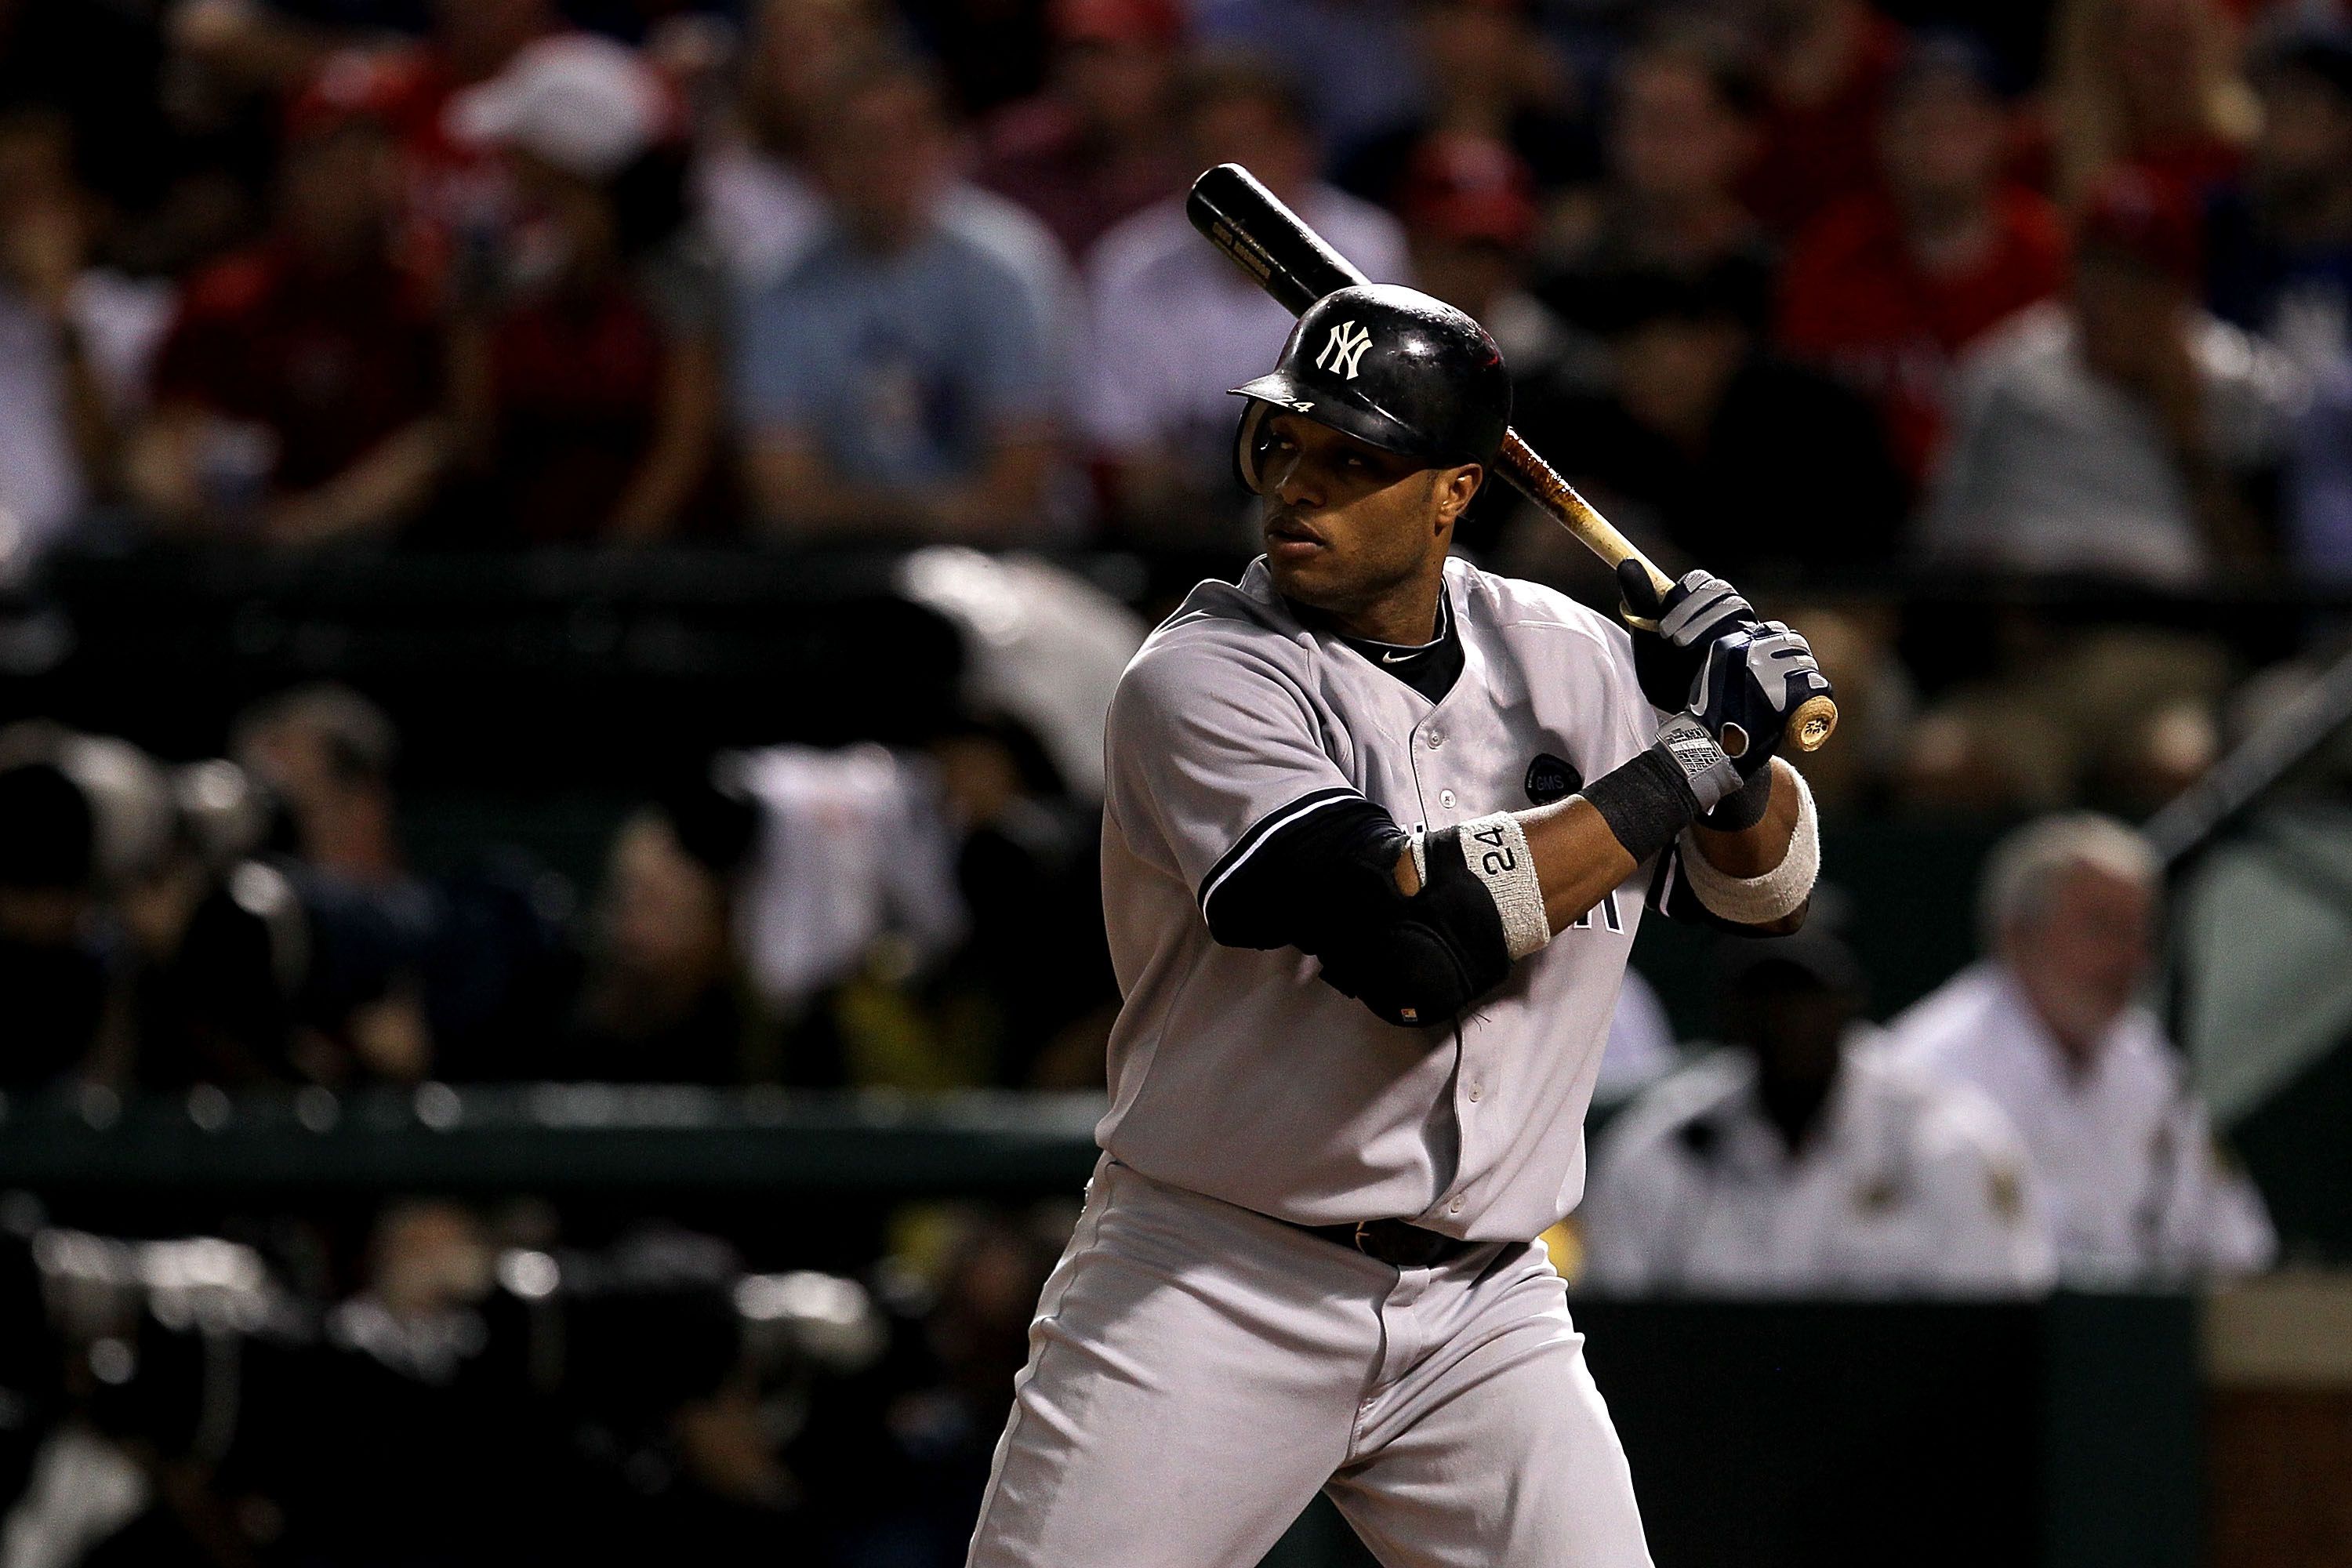 ARLINGTON, TX - OCTOBER 22:  Robinson Cano #24 of the New York Yankees bats against the Texas Rangers in Game Six of the ALCS during the 2010 MLB Playoffs at Rangers Ballpark in Arlington on October 22, 2010 in Arlington, Texas. The Rangers won 6-1.  (Pho